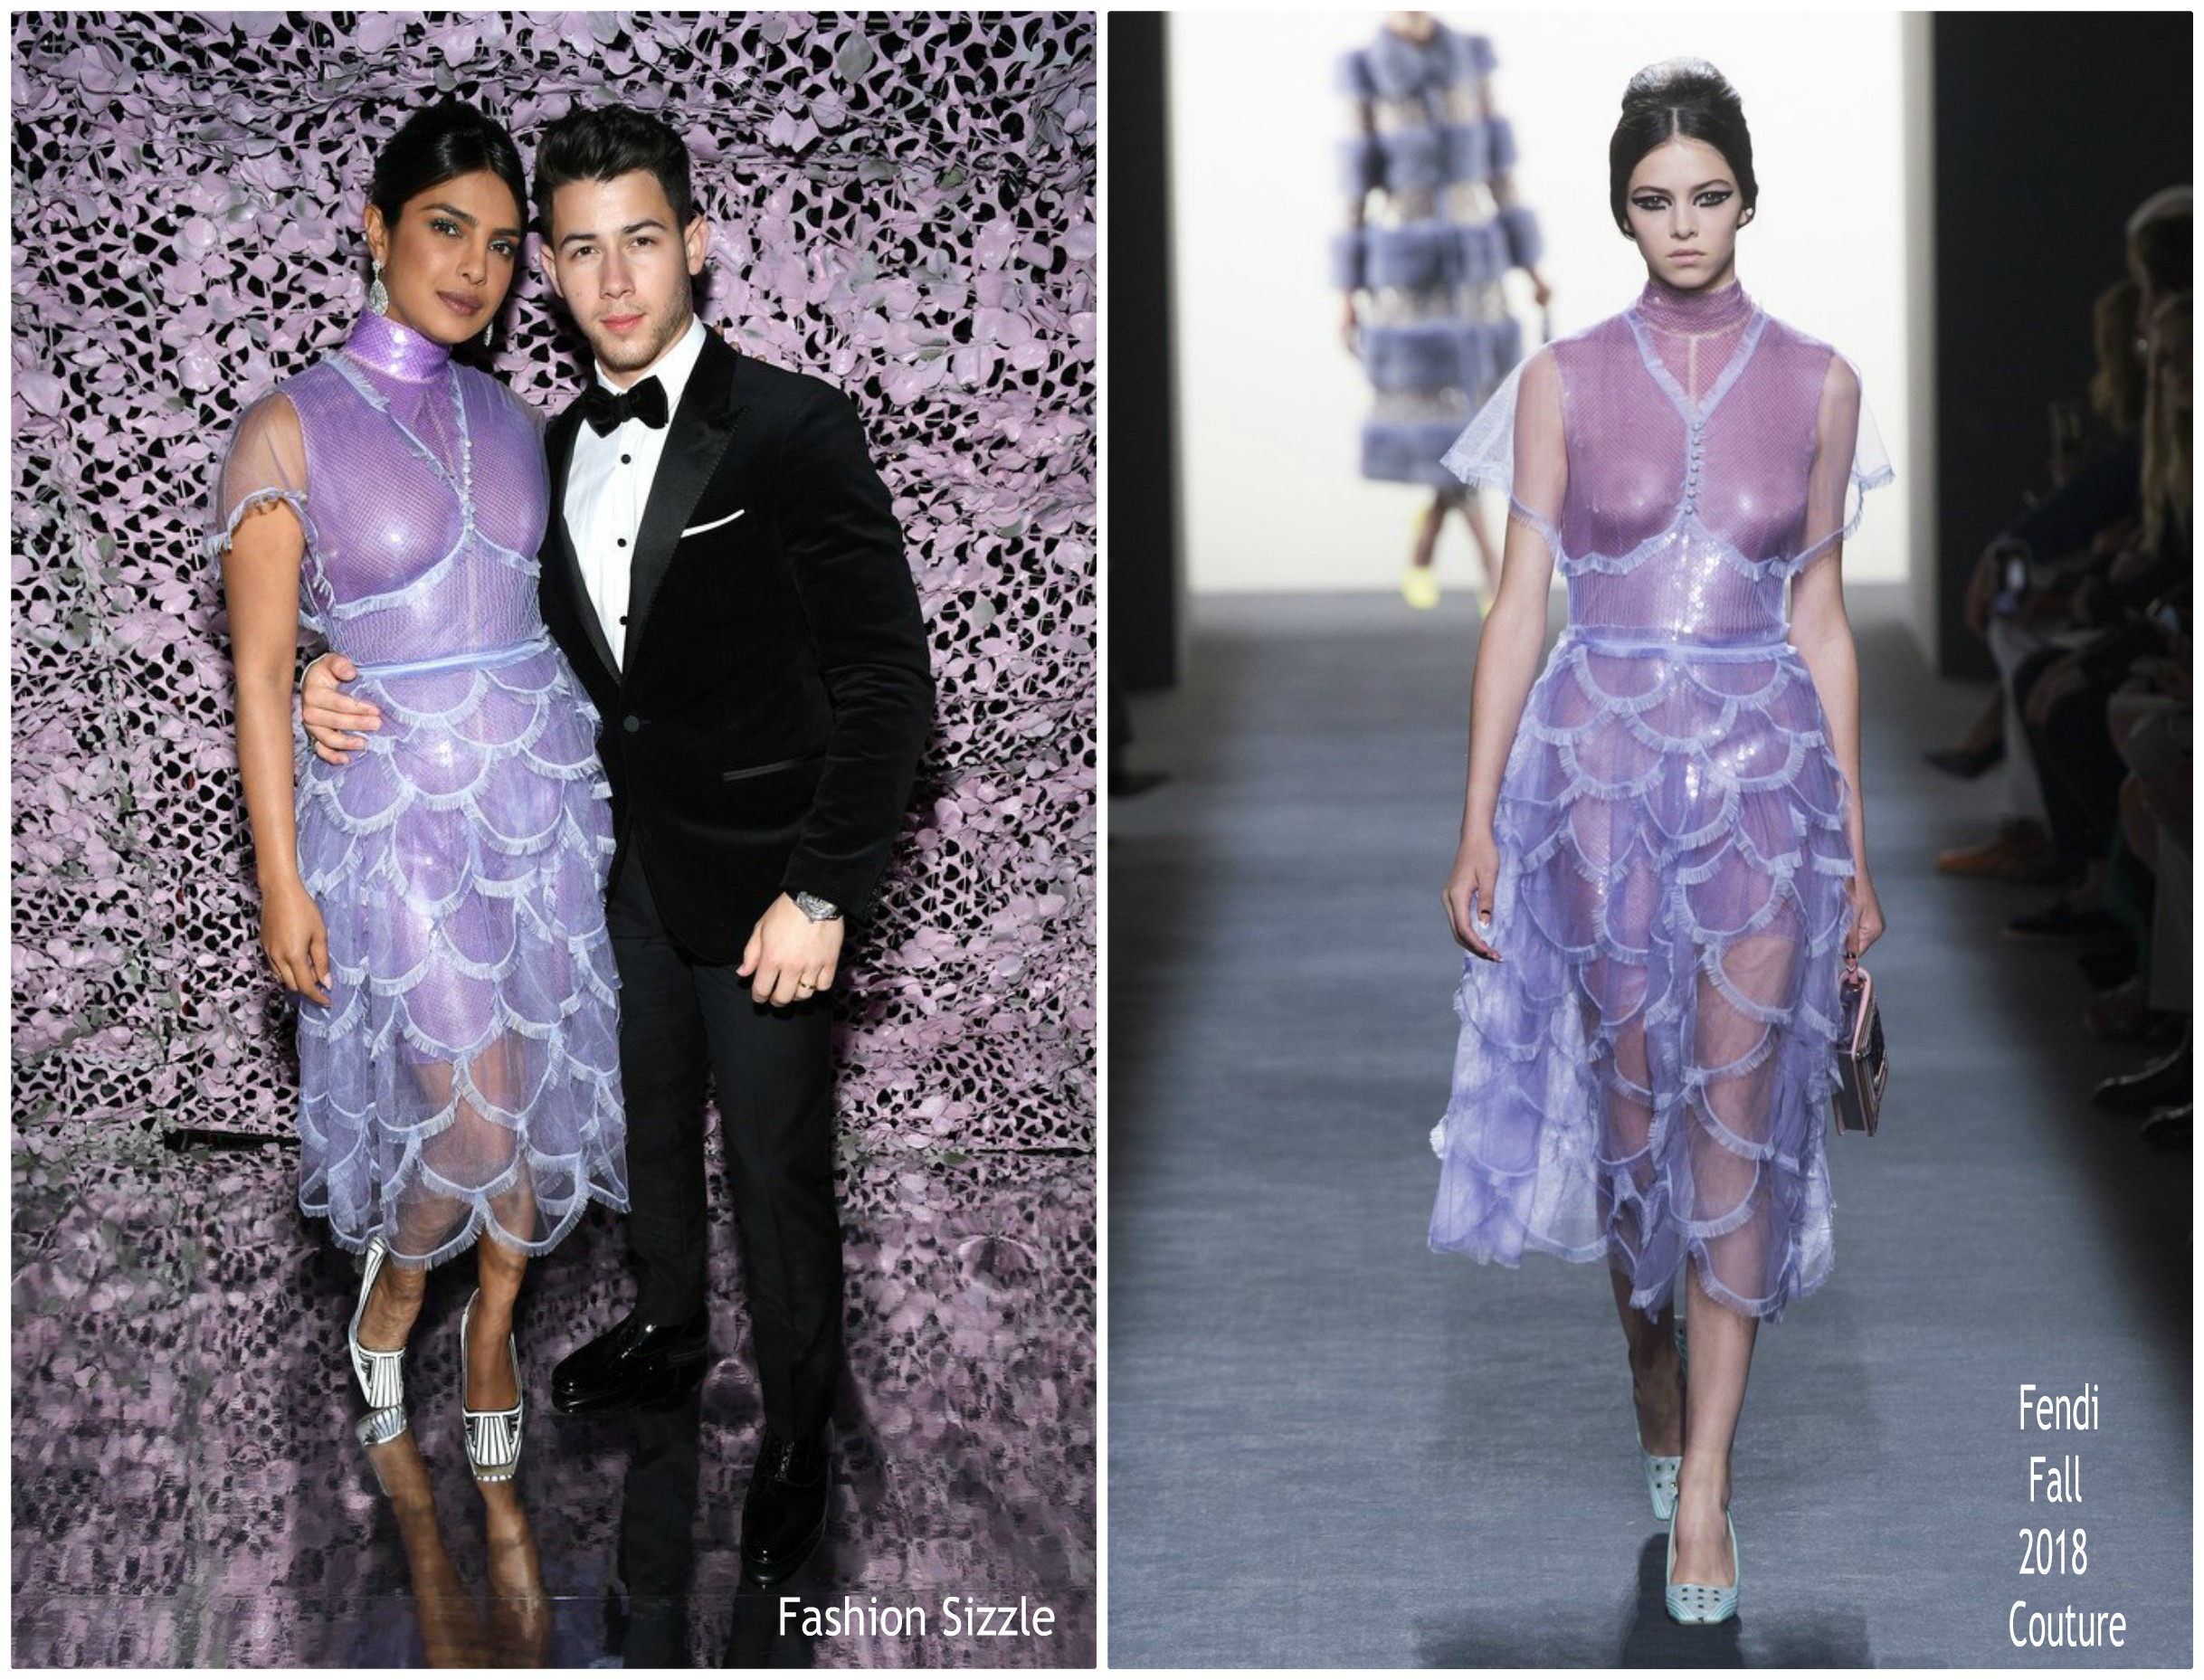 priyanka-chopra-jonas-in-fendi-couture-love-night chopard-gala-